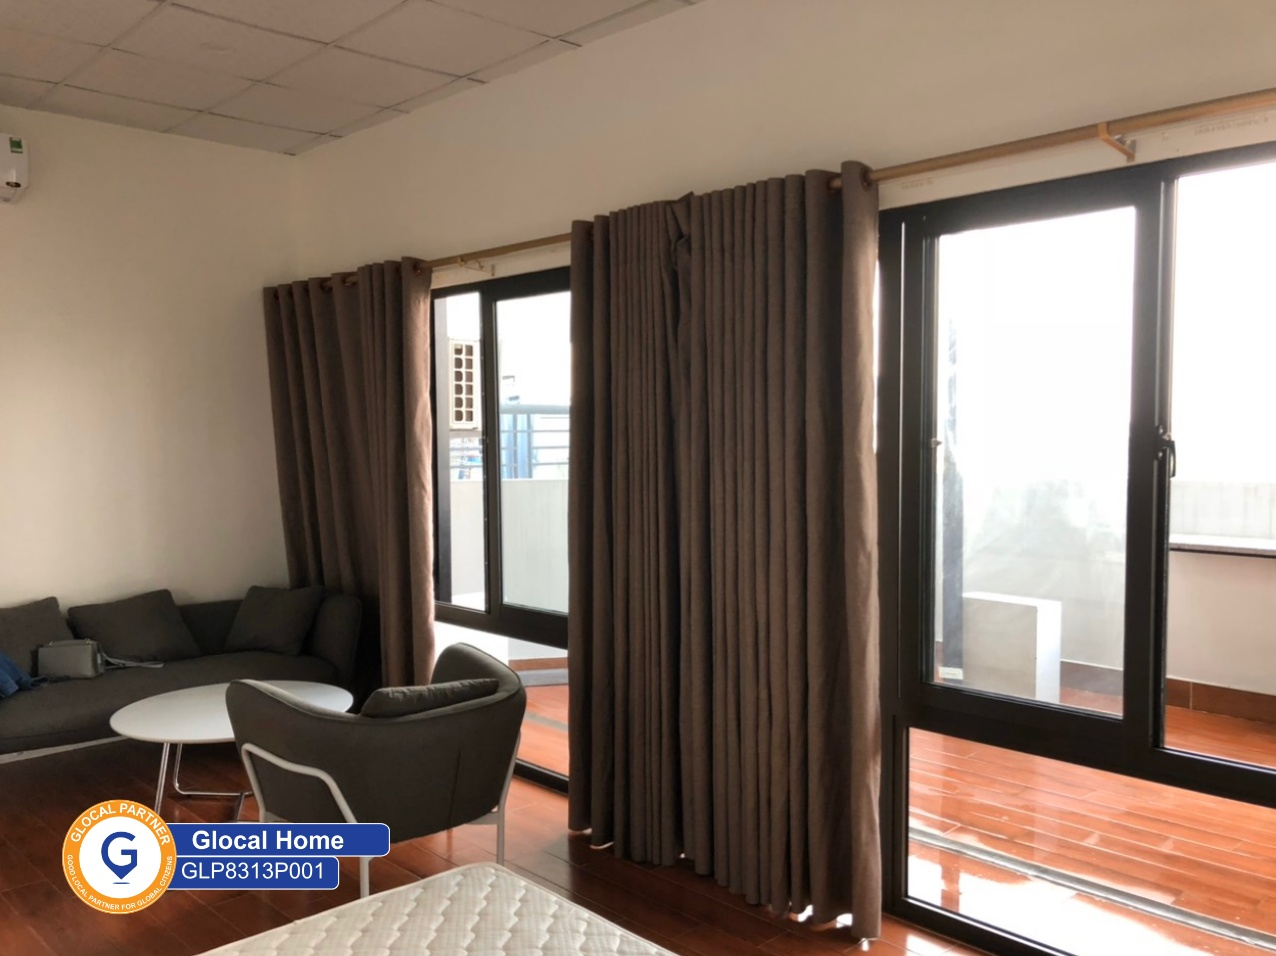 1 bedroom apartment, many windows and large balcony in Au Co street